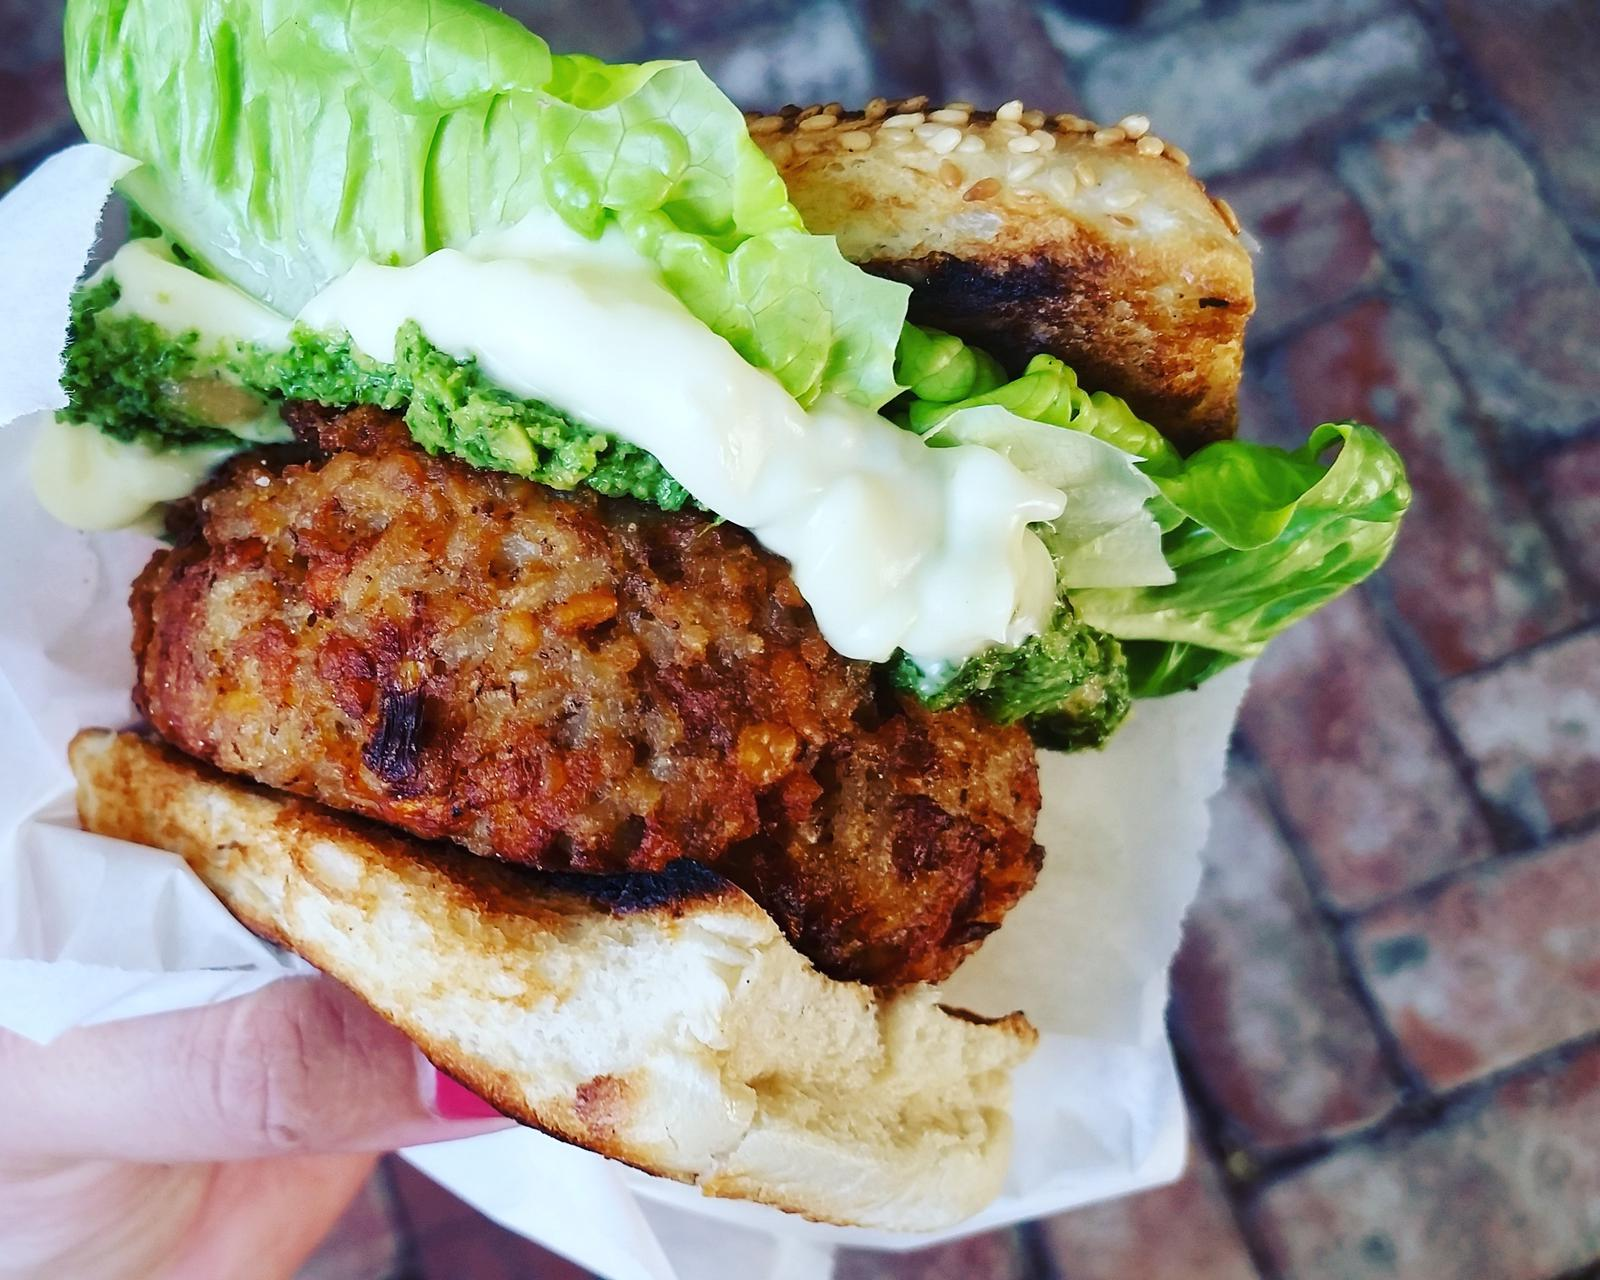 Mix beans burger with chimichurri dip, cos lettuce and aioli